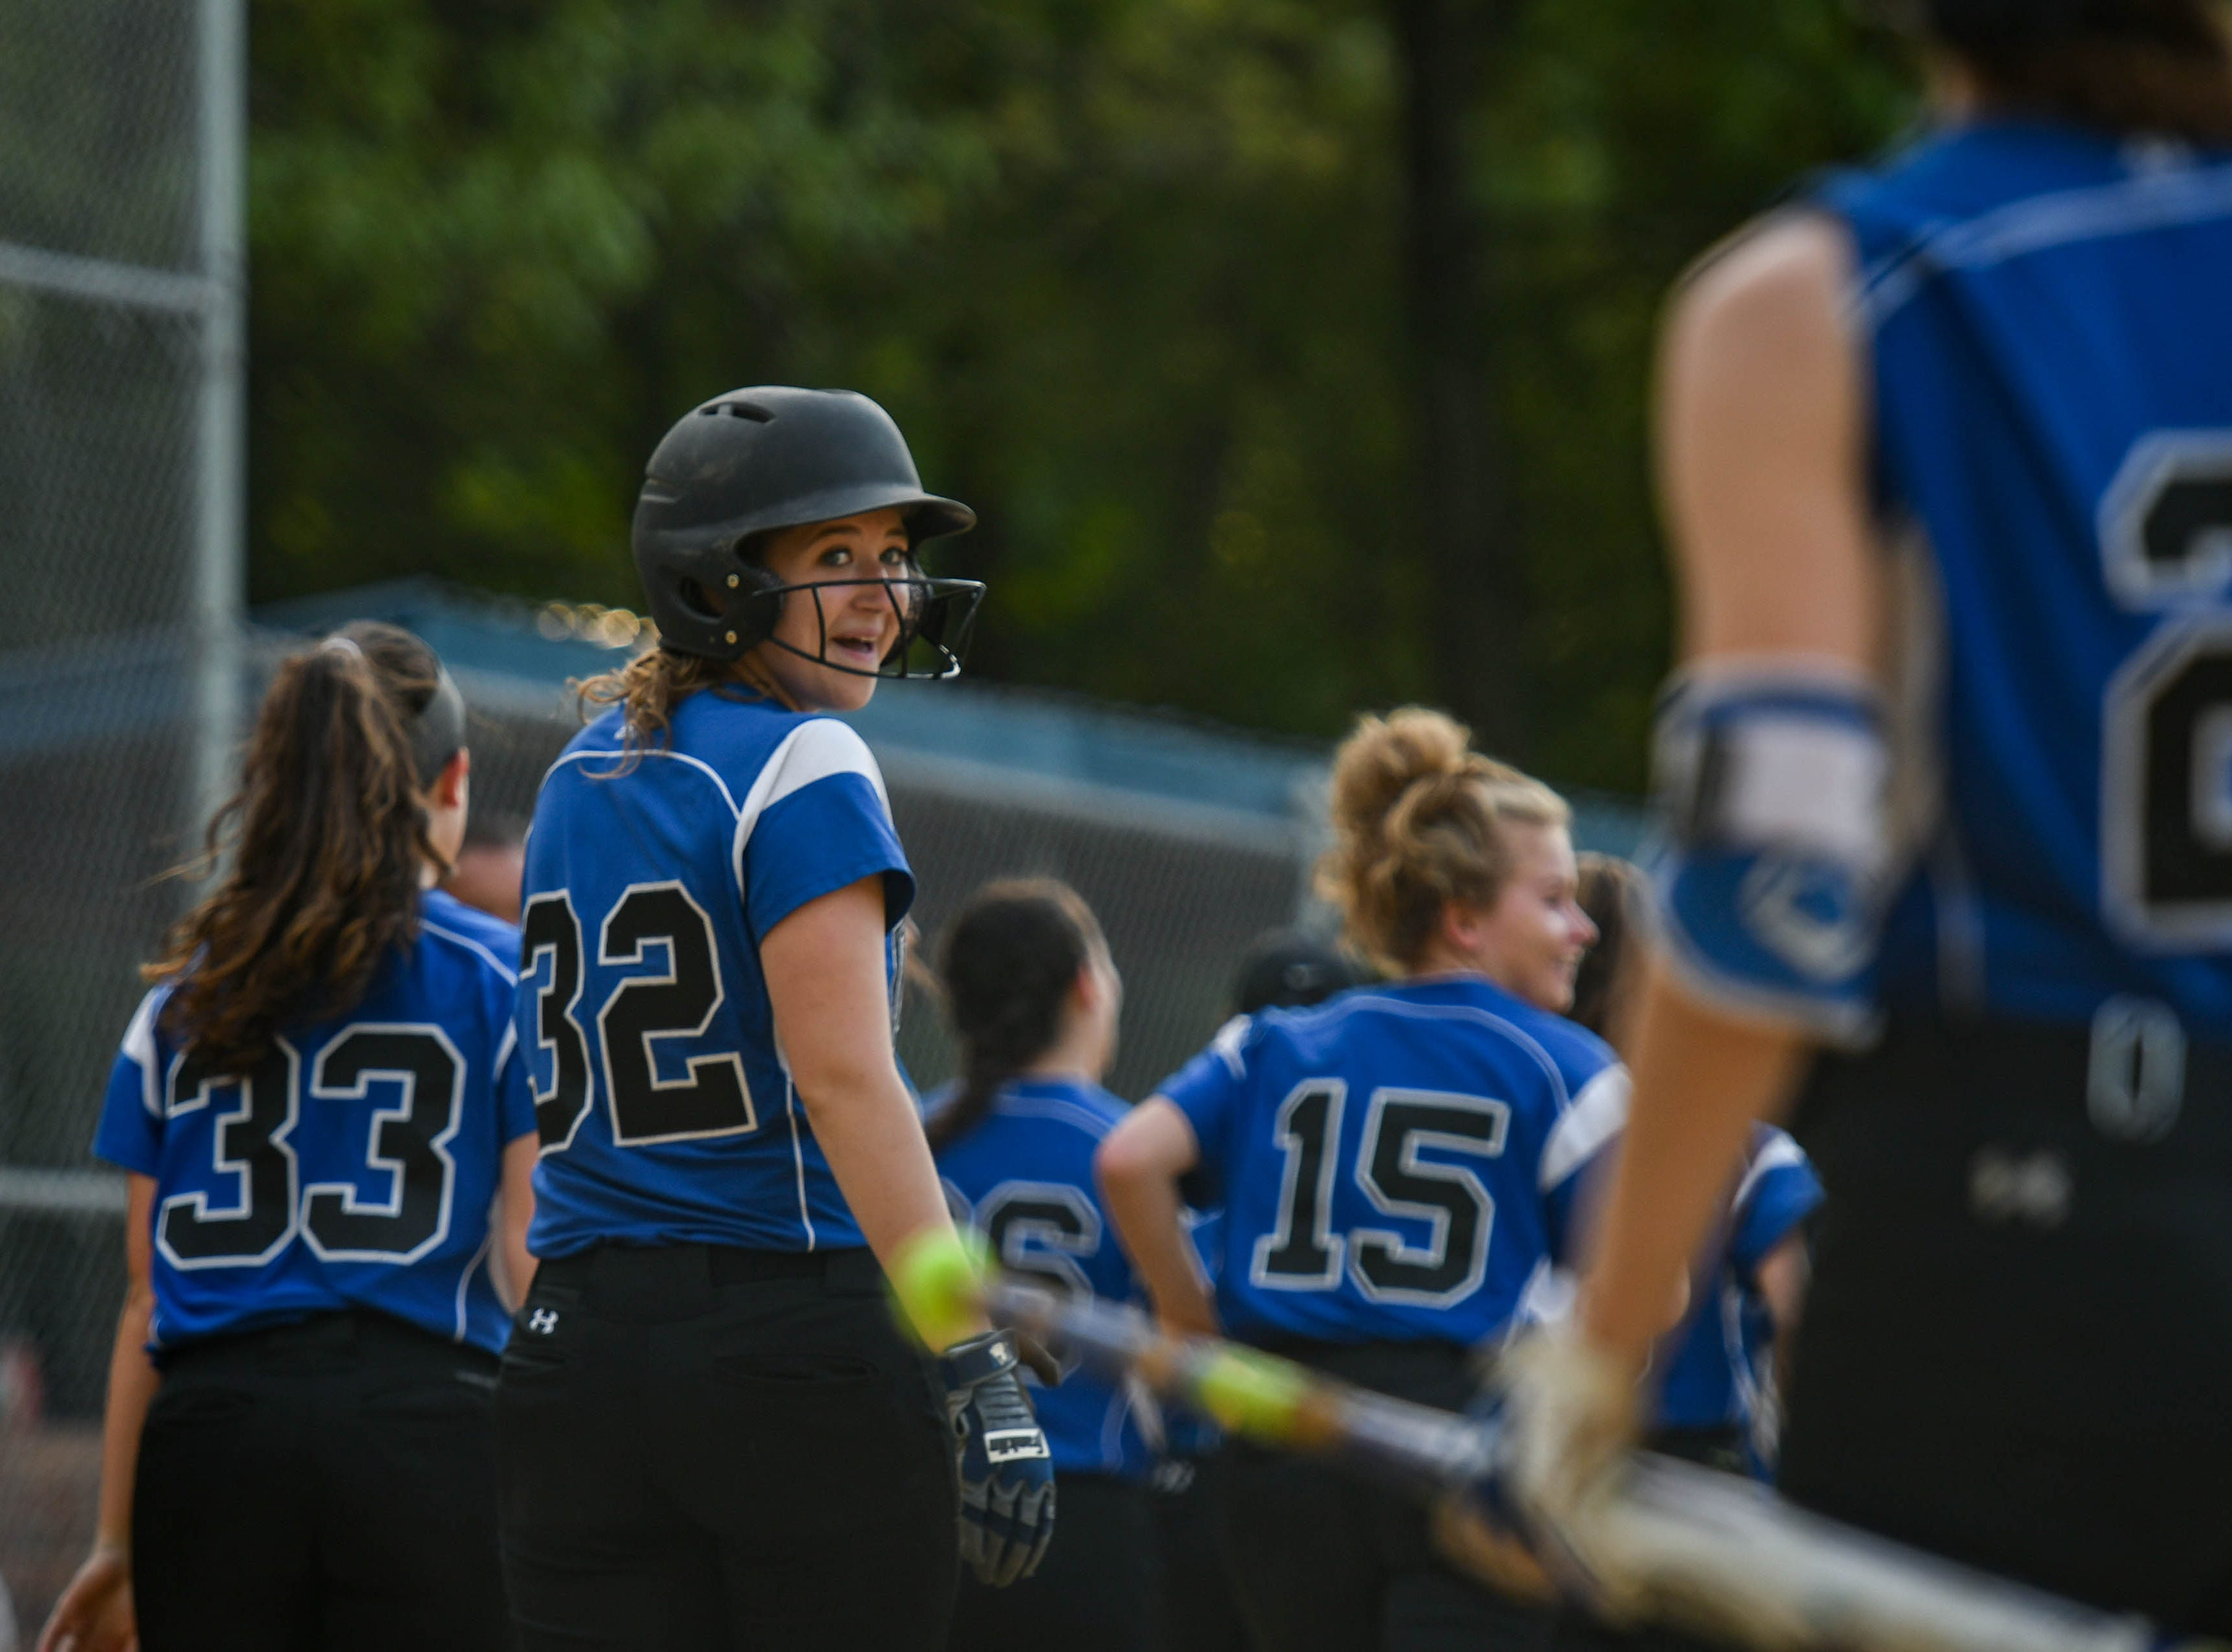 Brooklyn Pugner (32) leaves the field with the Decatur team after hitting a home run in the in the Bayside Softball Championship game against Colonel Richardson on Wednesday, May 8, 2019.